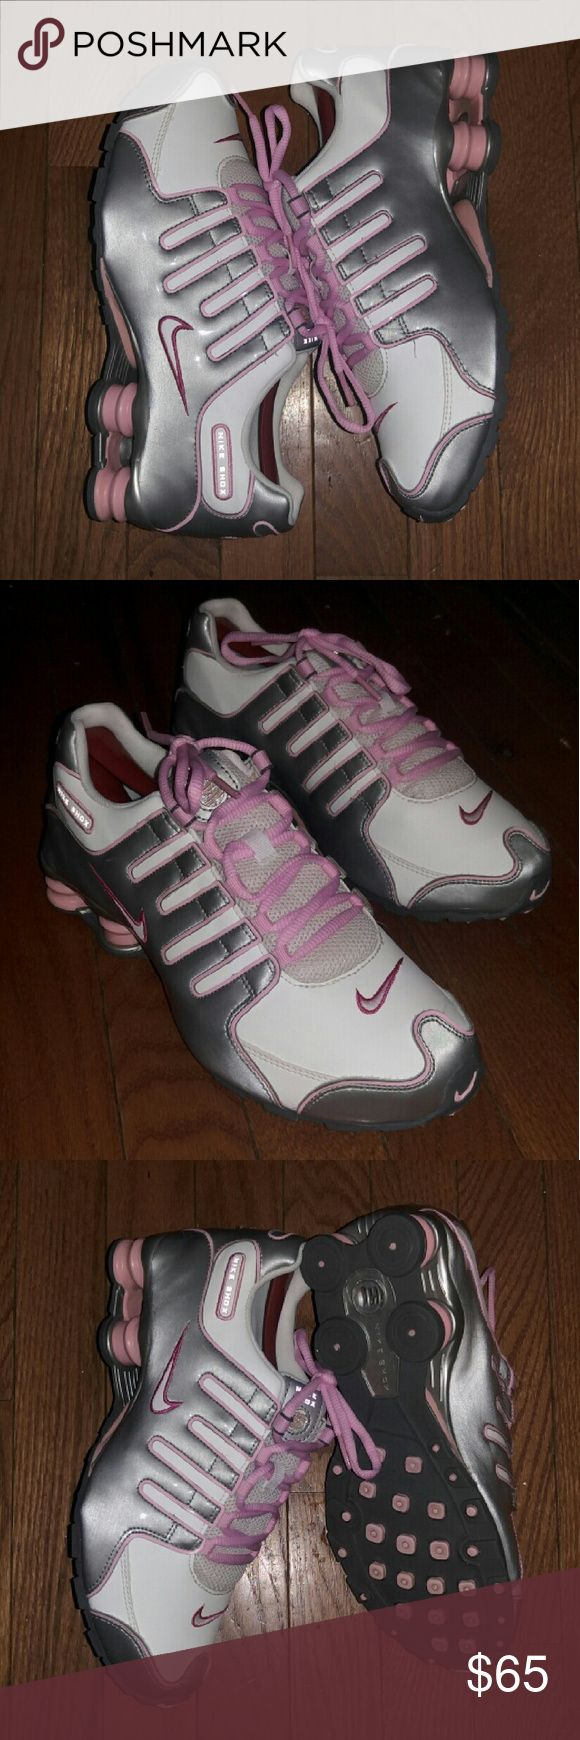 Women's Nike Shox NZ Women's Nike Shox NZ size 7y equivalent to a woman's 8.5 great condition no rips stains or tears check out my other listings for 25% off bundles Nike Shoes Athletic Shoes